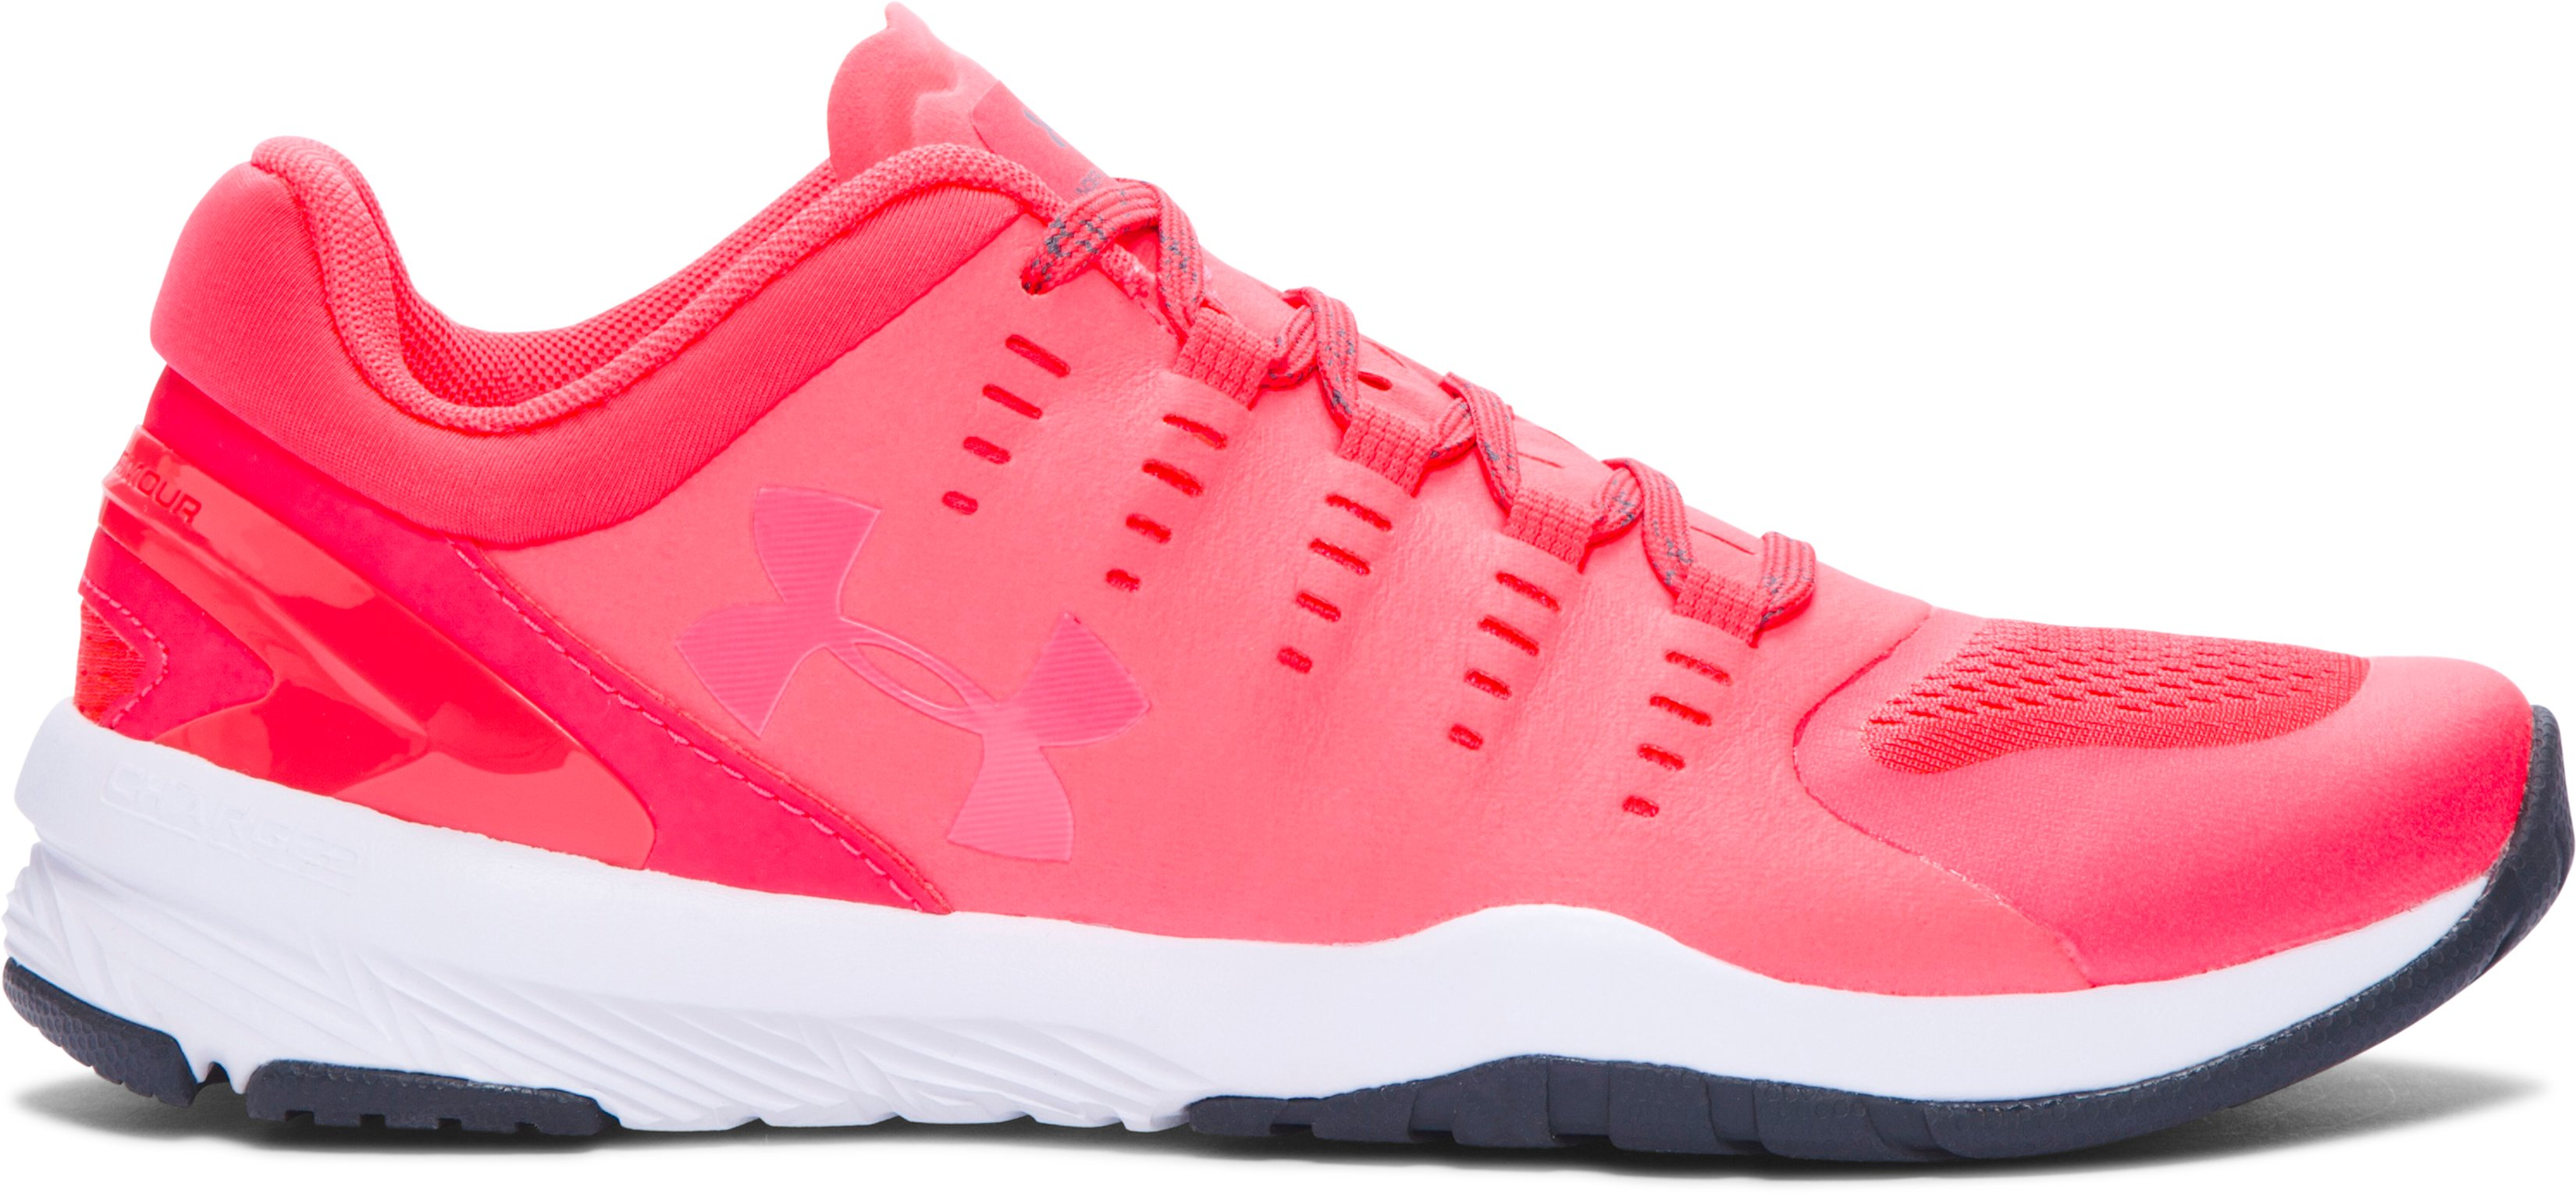 Women's UA Charged Stunner Training Shoes, PINK CHROMA, zoomed image